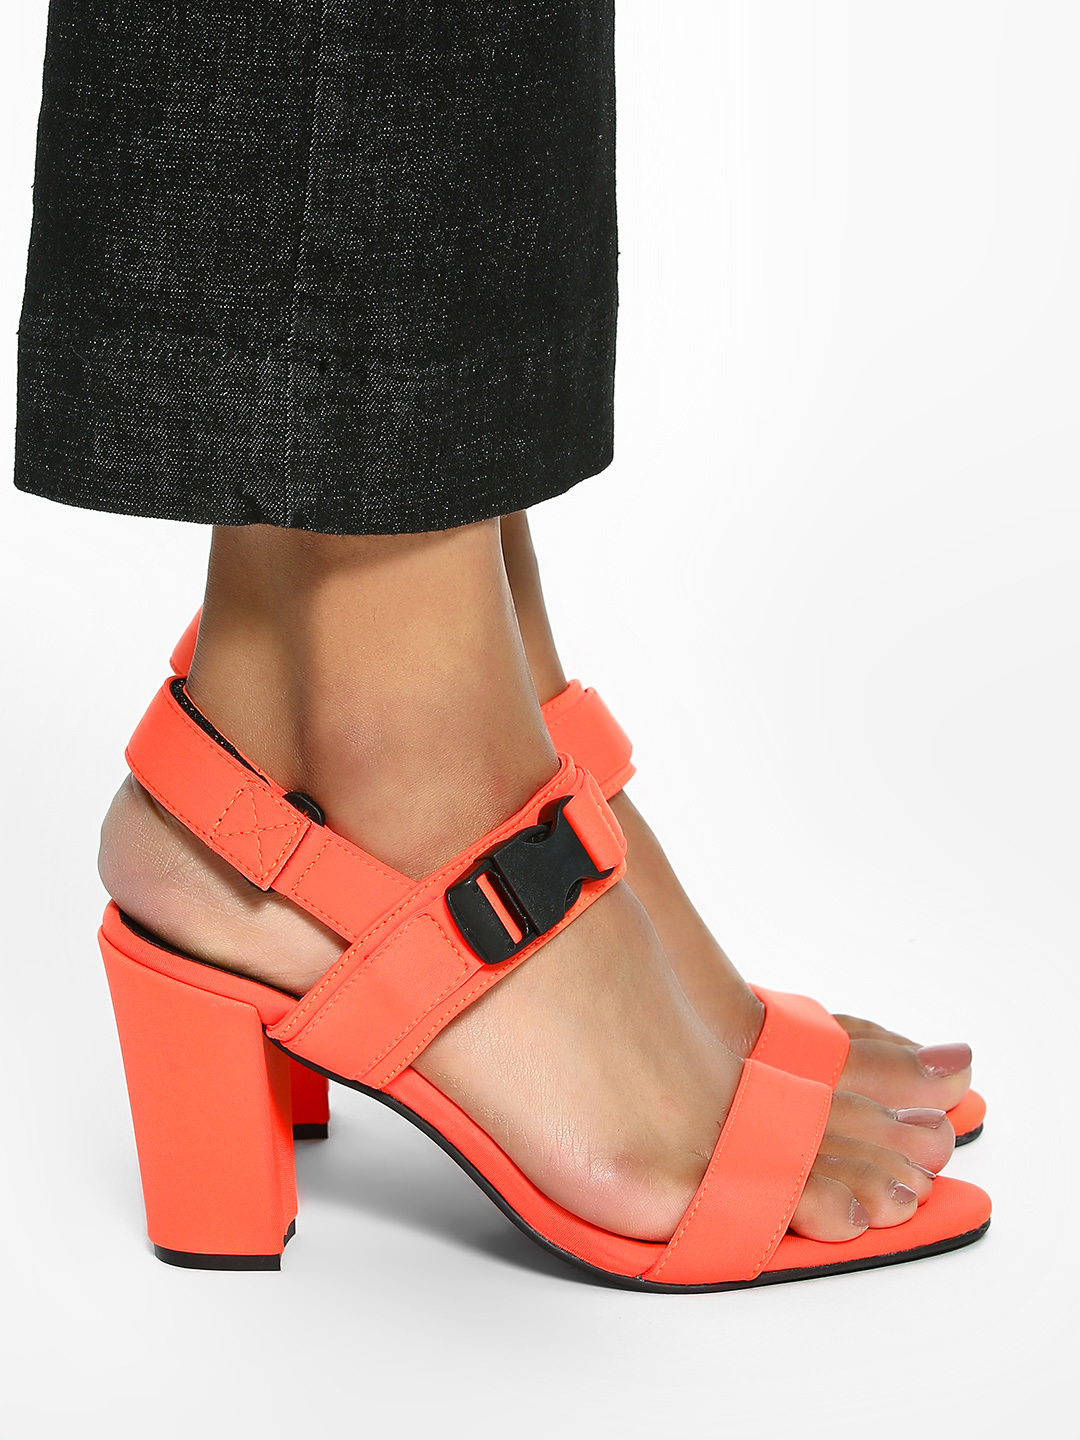 KOOVS Neon Orange Buckle Strap Heeled Sandals 1